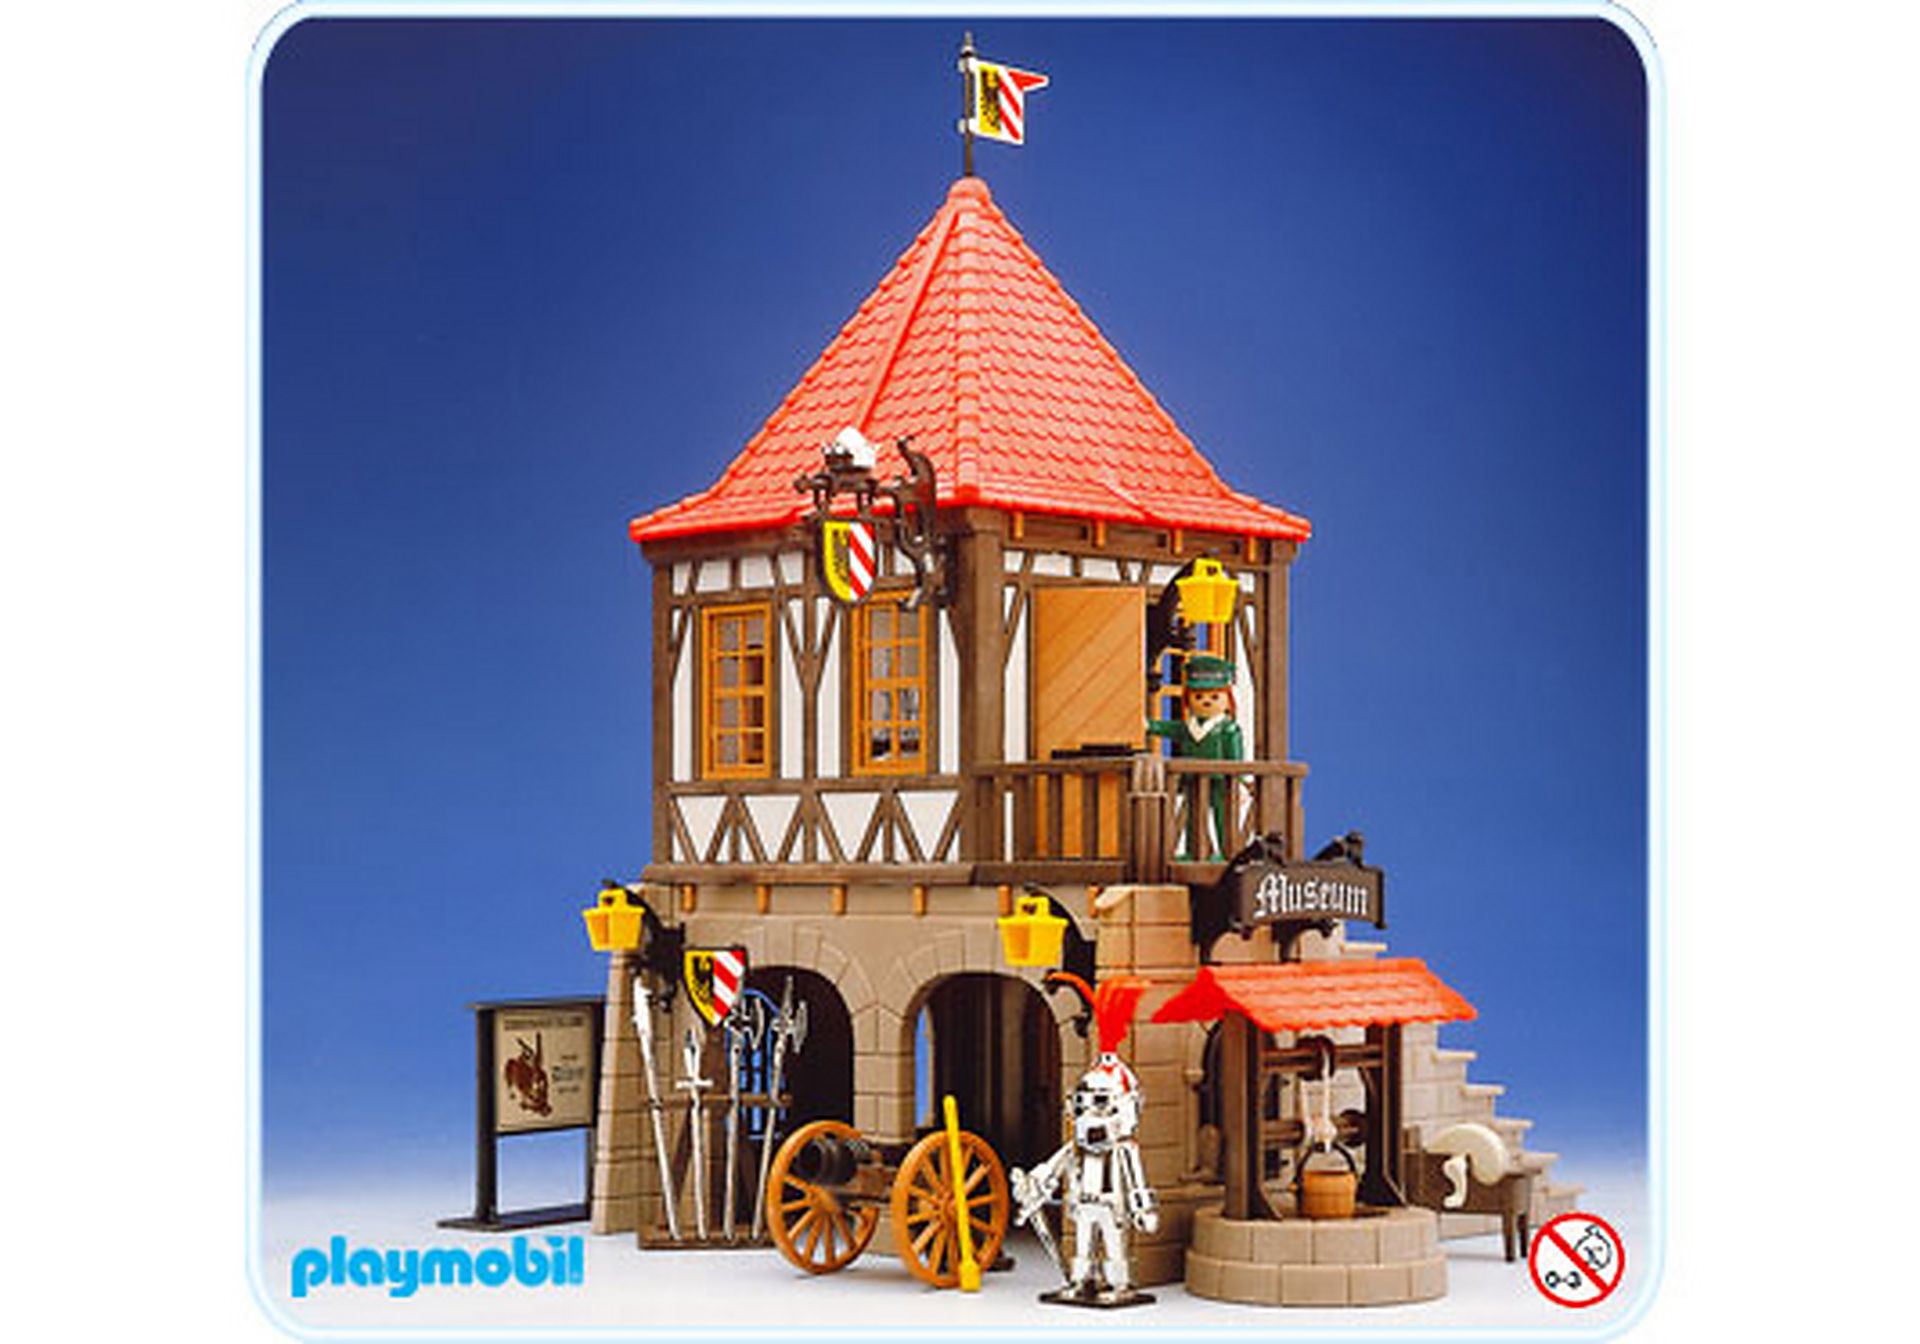 http://media.playmobil.com/i/playmobil/3449-A_product_detail/Musée